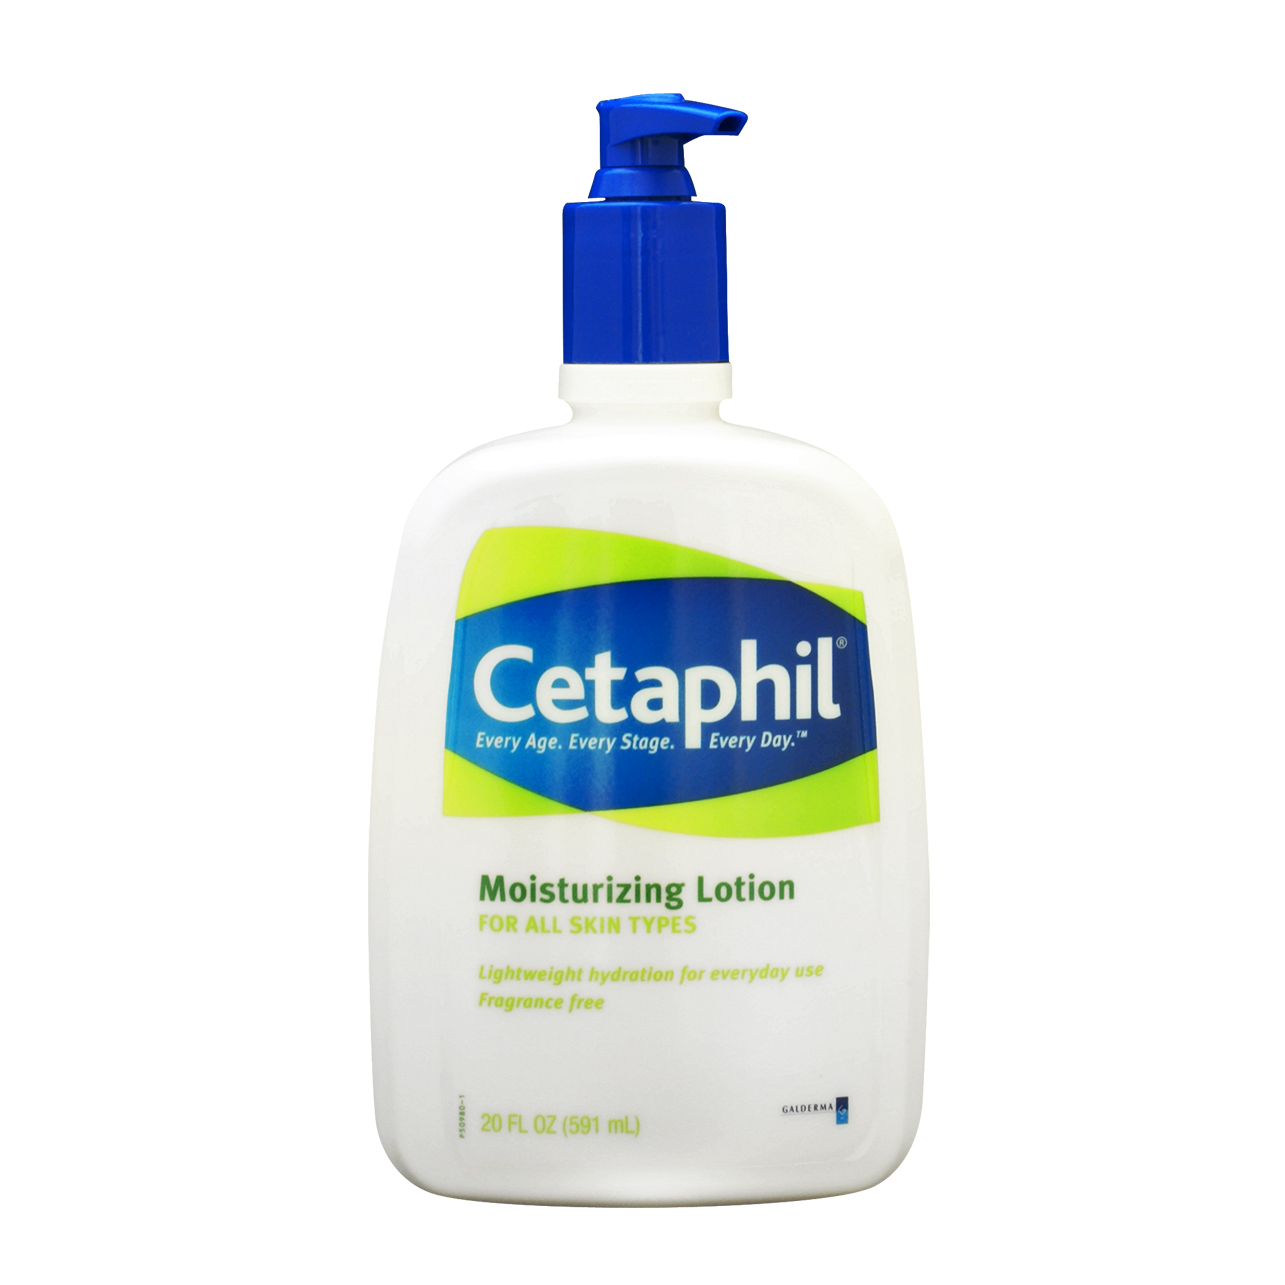 Lotion: HEALTH AND BEAUTY :: SKIN CARE :: Cetaphil Moisturizing